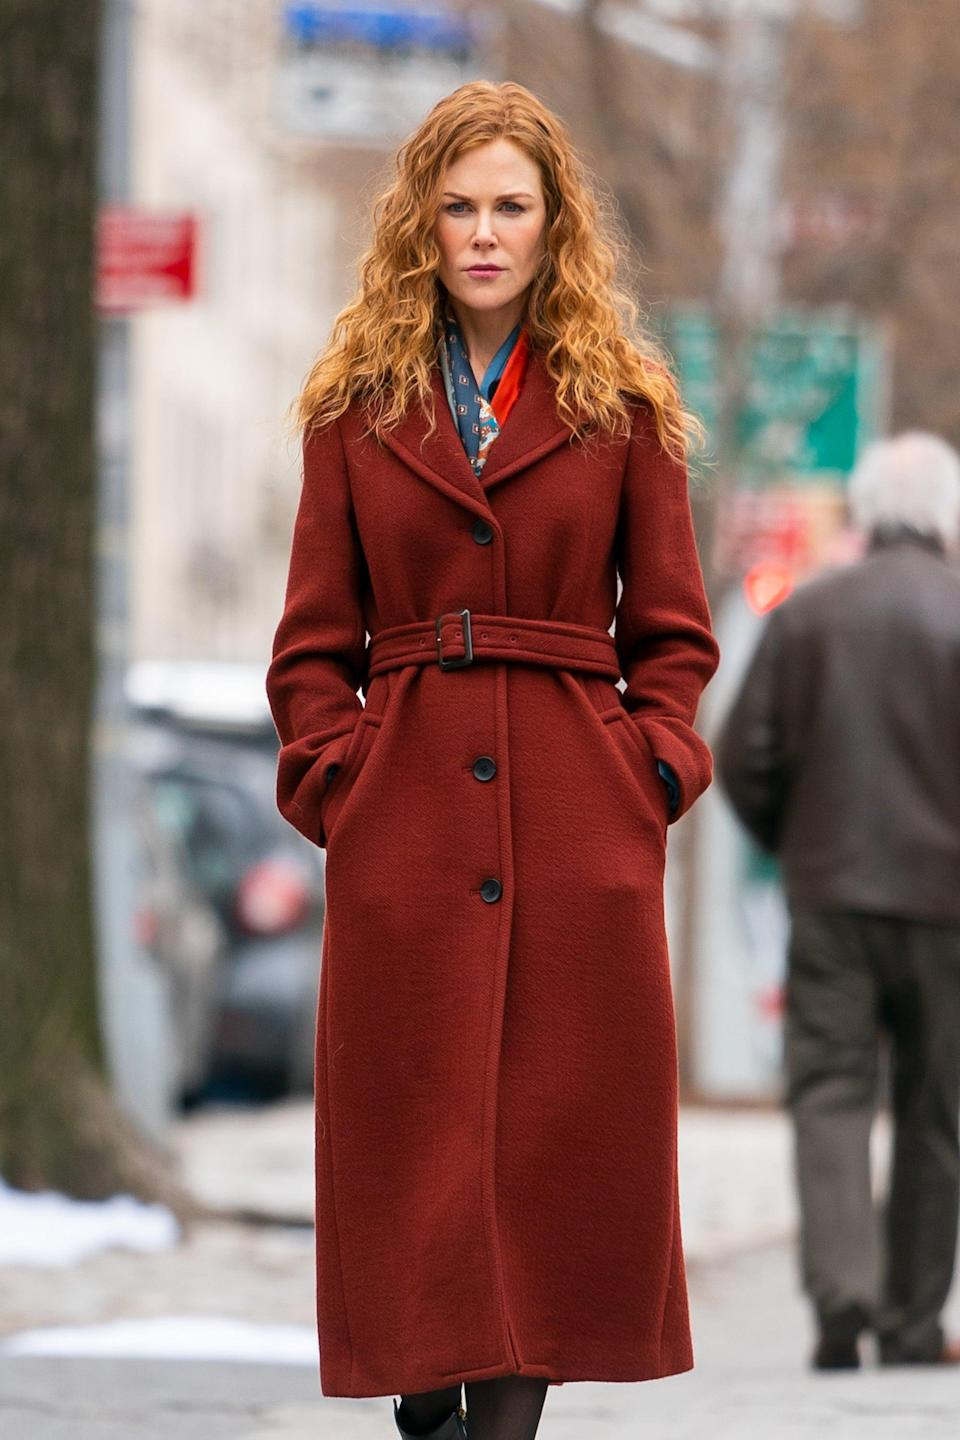 <p>This tailored burgundy number is a 3.1 Phillip Lim design that features four large buttons, pockets, and a belt. Don't get your hopes up too much for copying this look, though, because <span>it's unfortunately sold out</span>.</p>